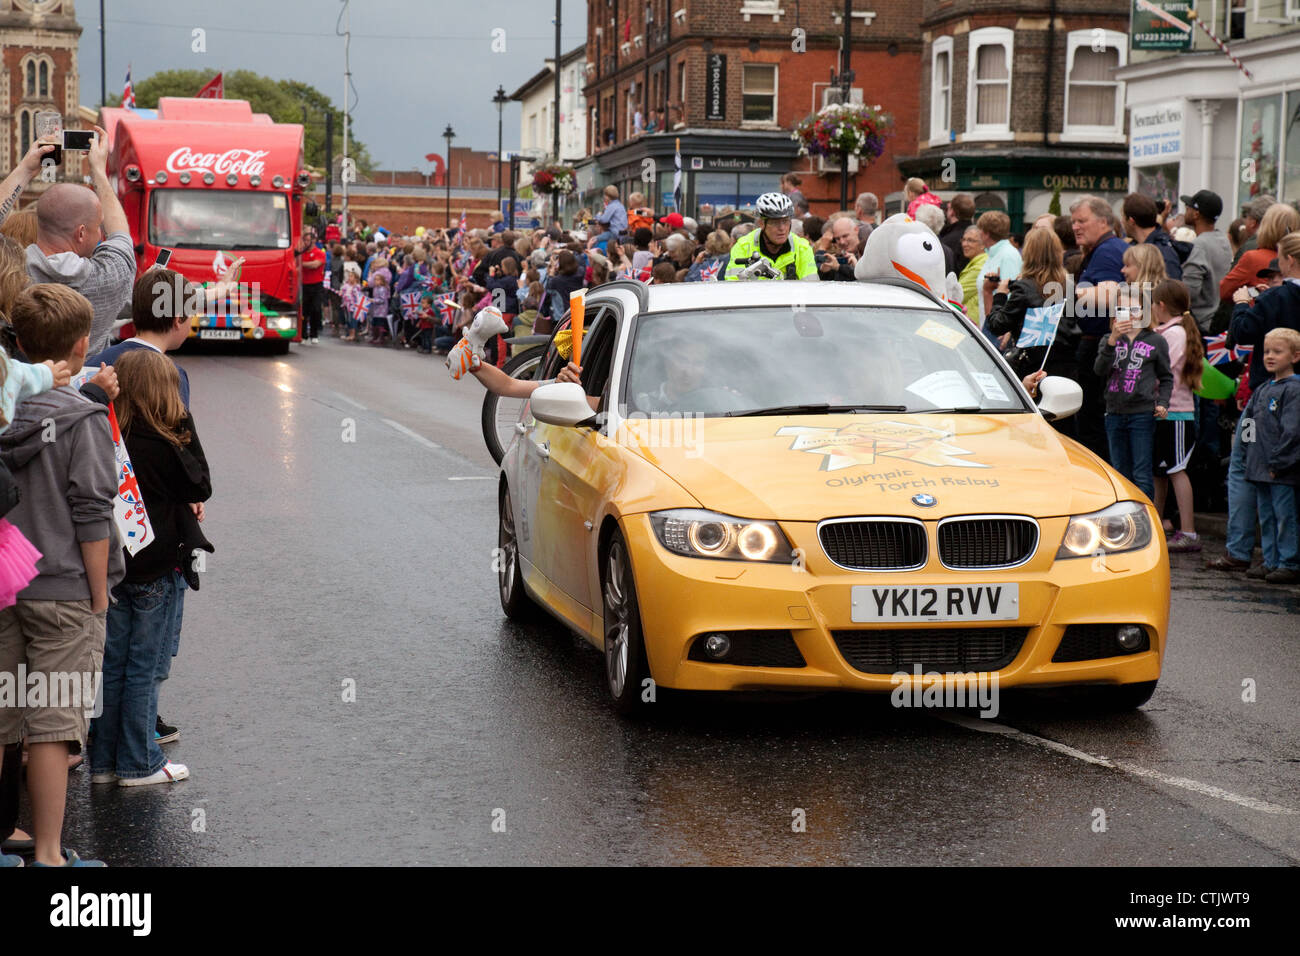 2012 Olympic Torch relay car in Newmarket Suffolk Est Anglia UK - Stock Image